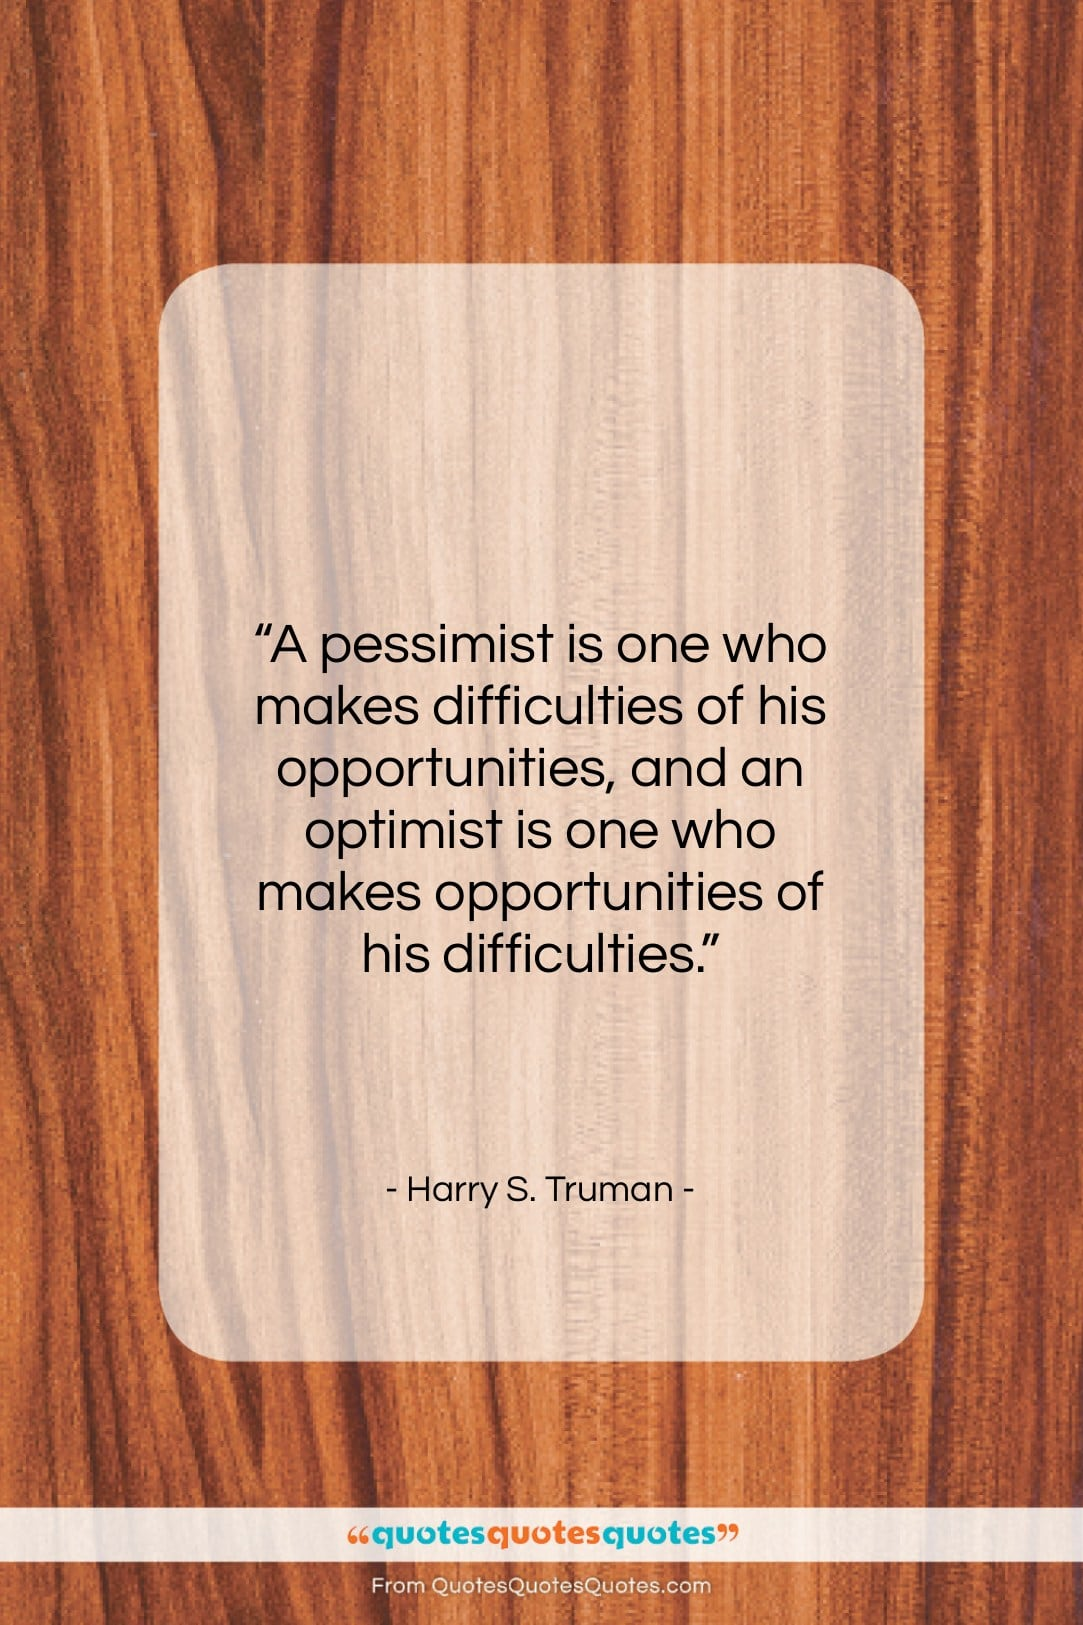 """Harry S. Truman quote: """"A pessimist is one who makes difficulties…""""- at QuotesQuotesQuotes.com"""